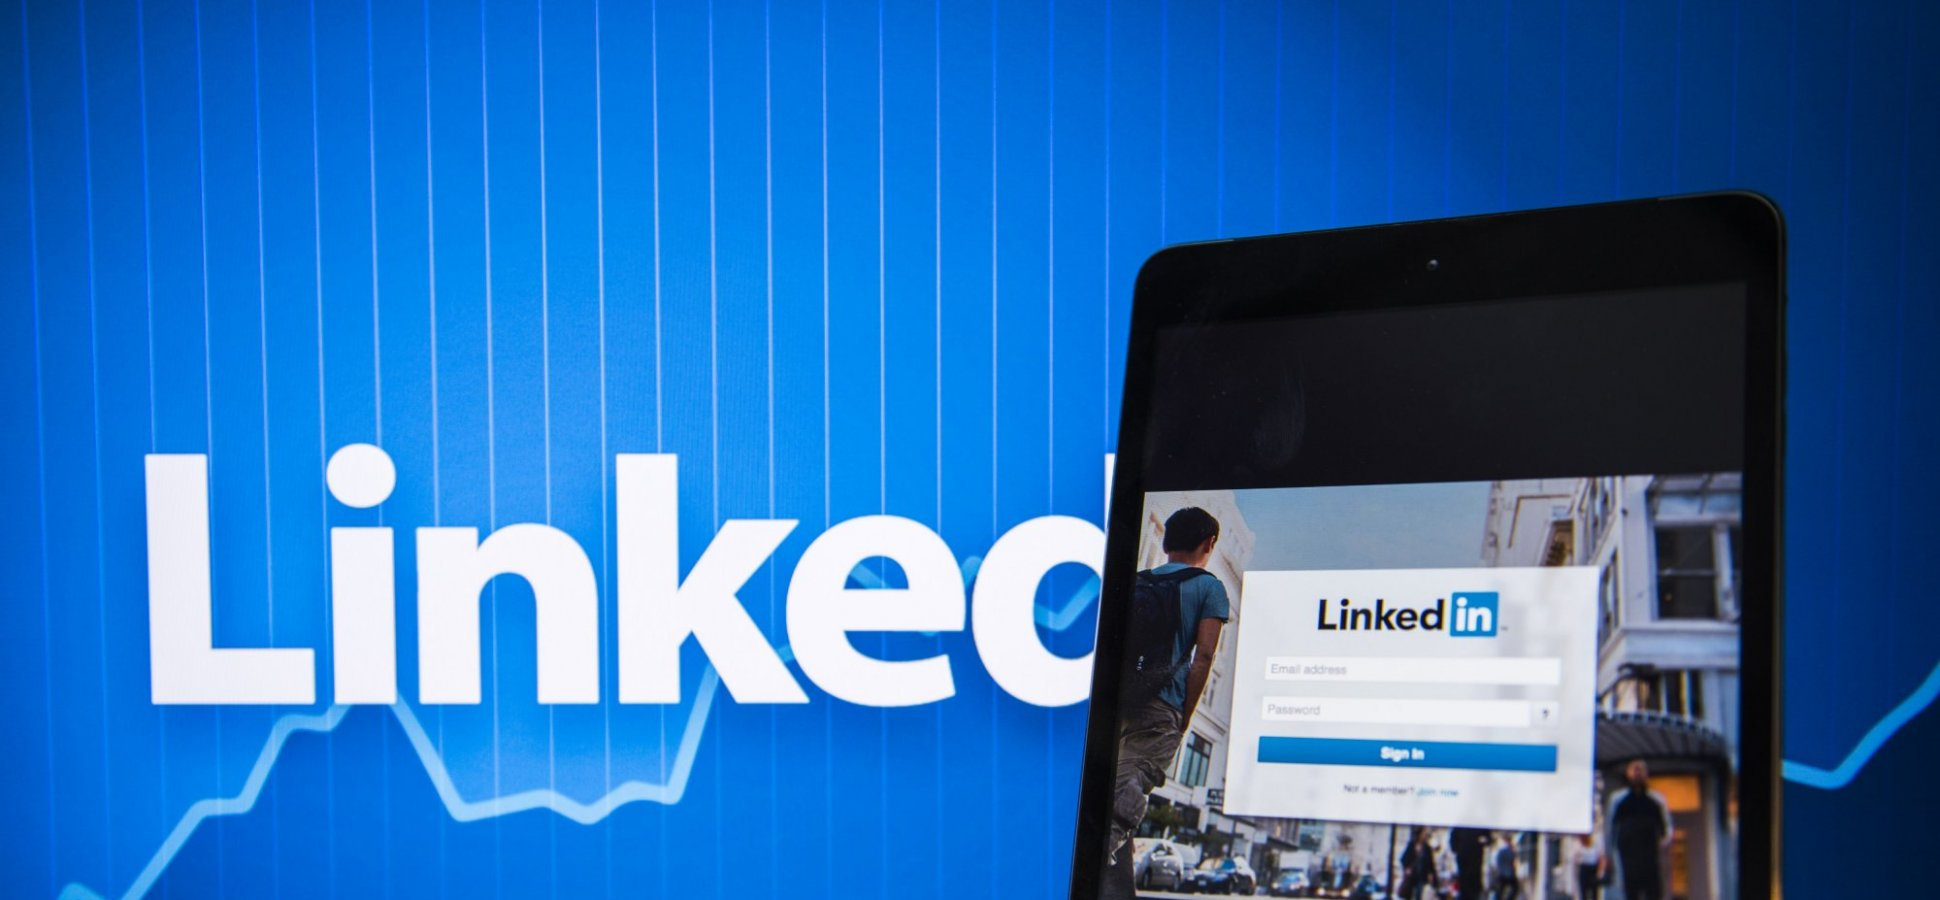 Here's How You Optimize Your LinkedIn Profile to Strengthen Your Brand and Grow Your Business